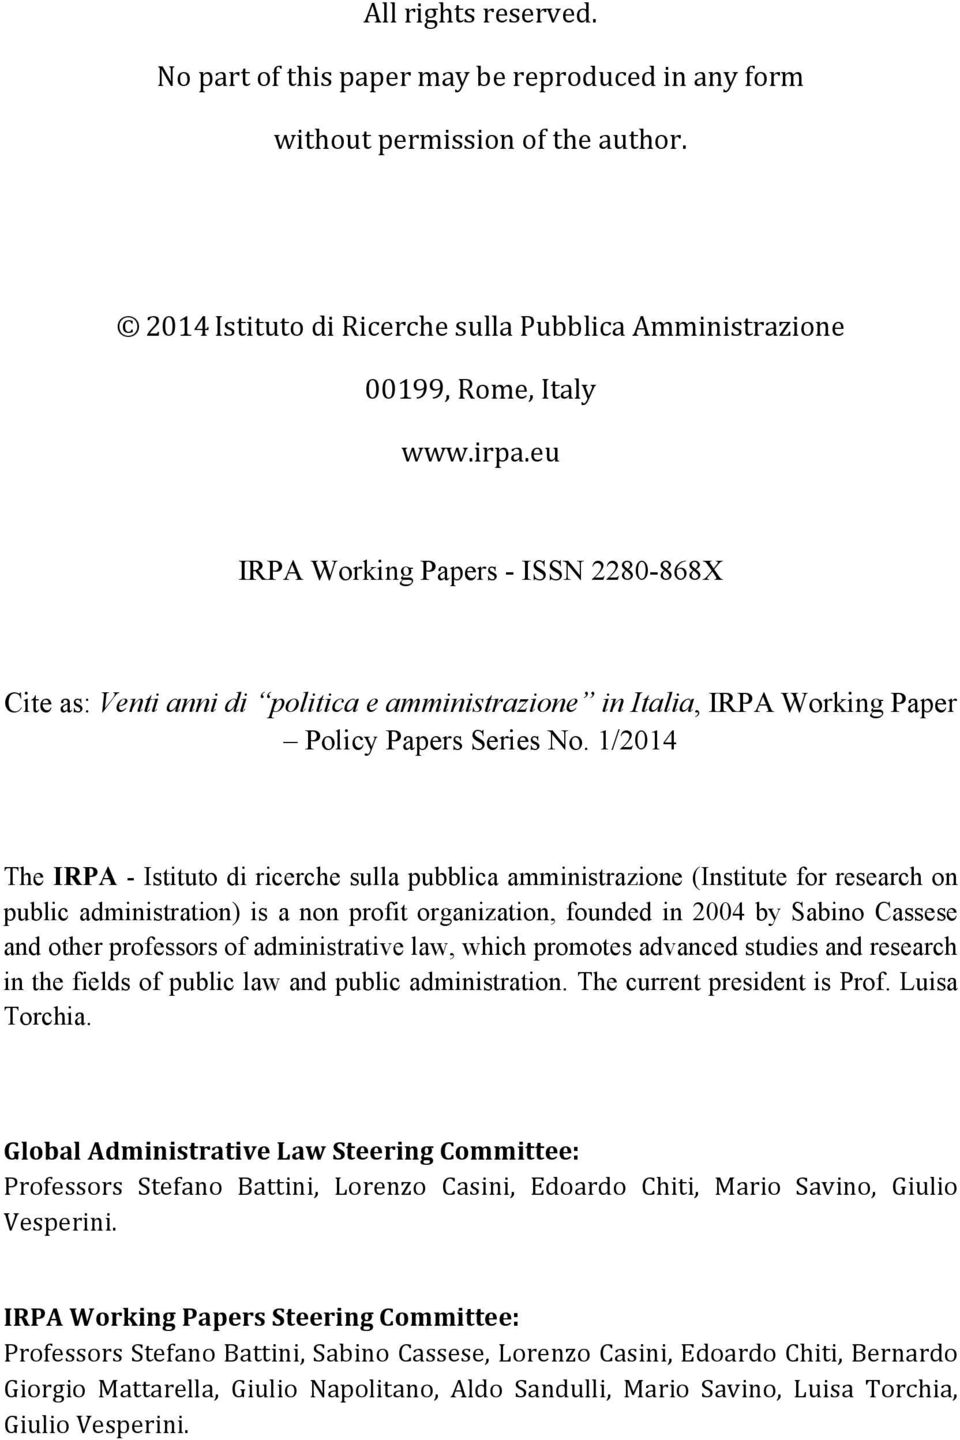 1/2014 The IRPA - Istituto di ricerche sulla pubblica amministrazione (Institute for research on public administration) is a non profit organization, founded in 2004 by Sabino Cassese and other